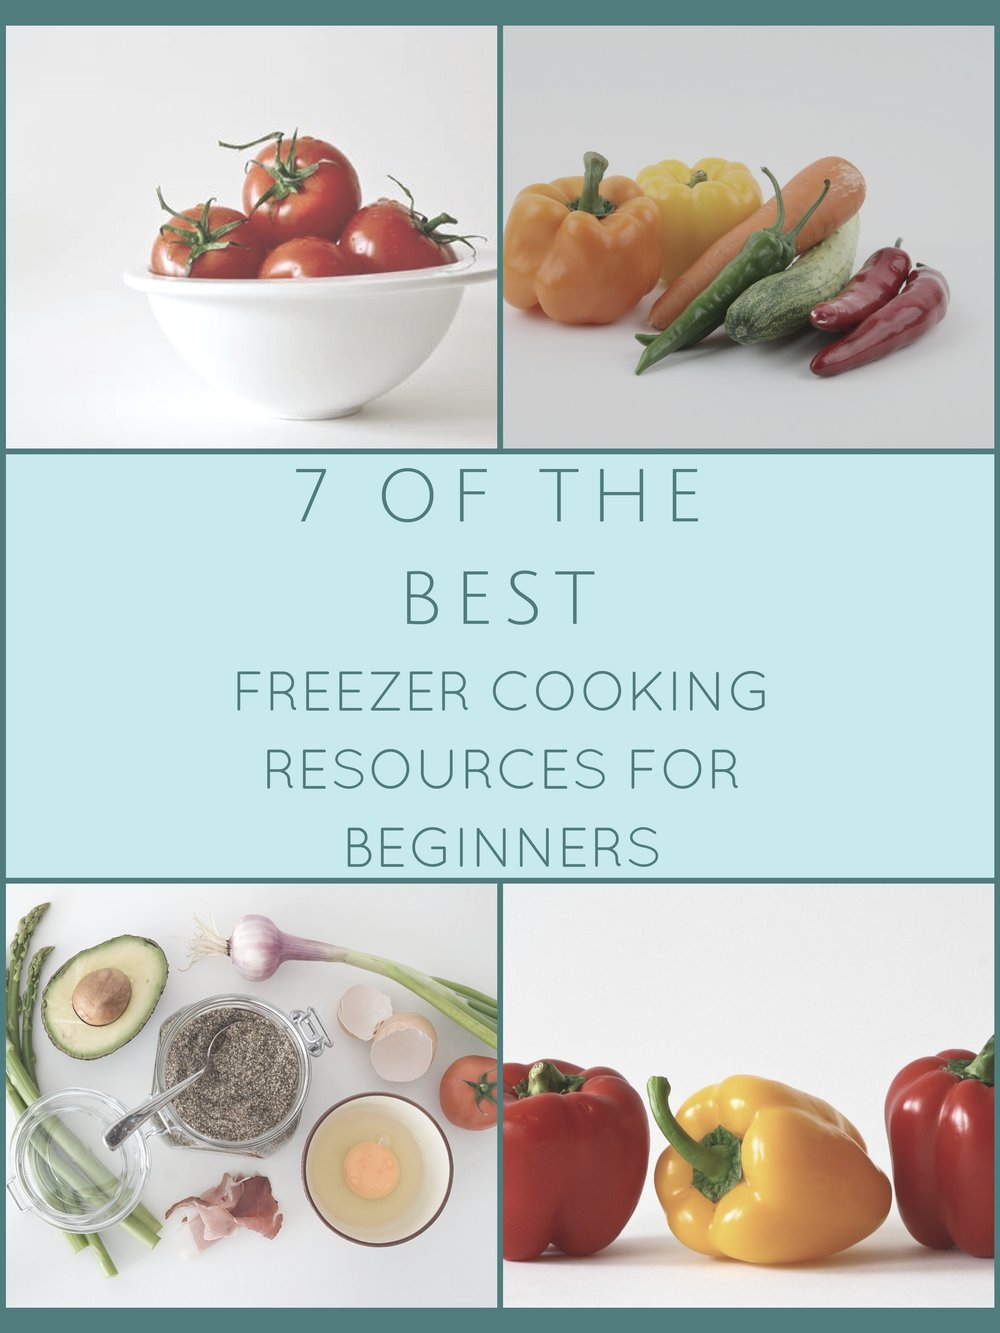 7 BEST FREEZER COOKING RESOURCES.jpg